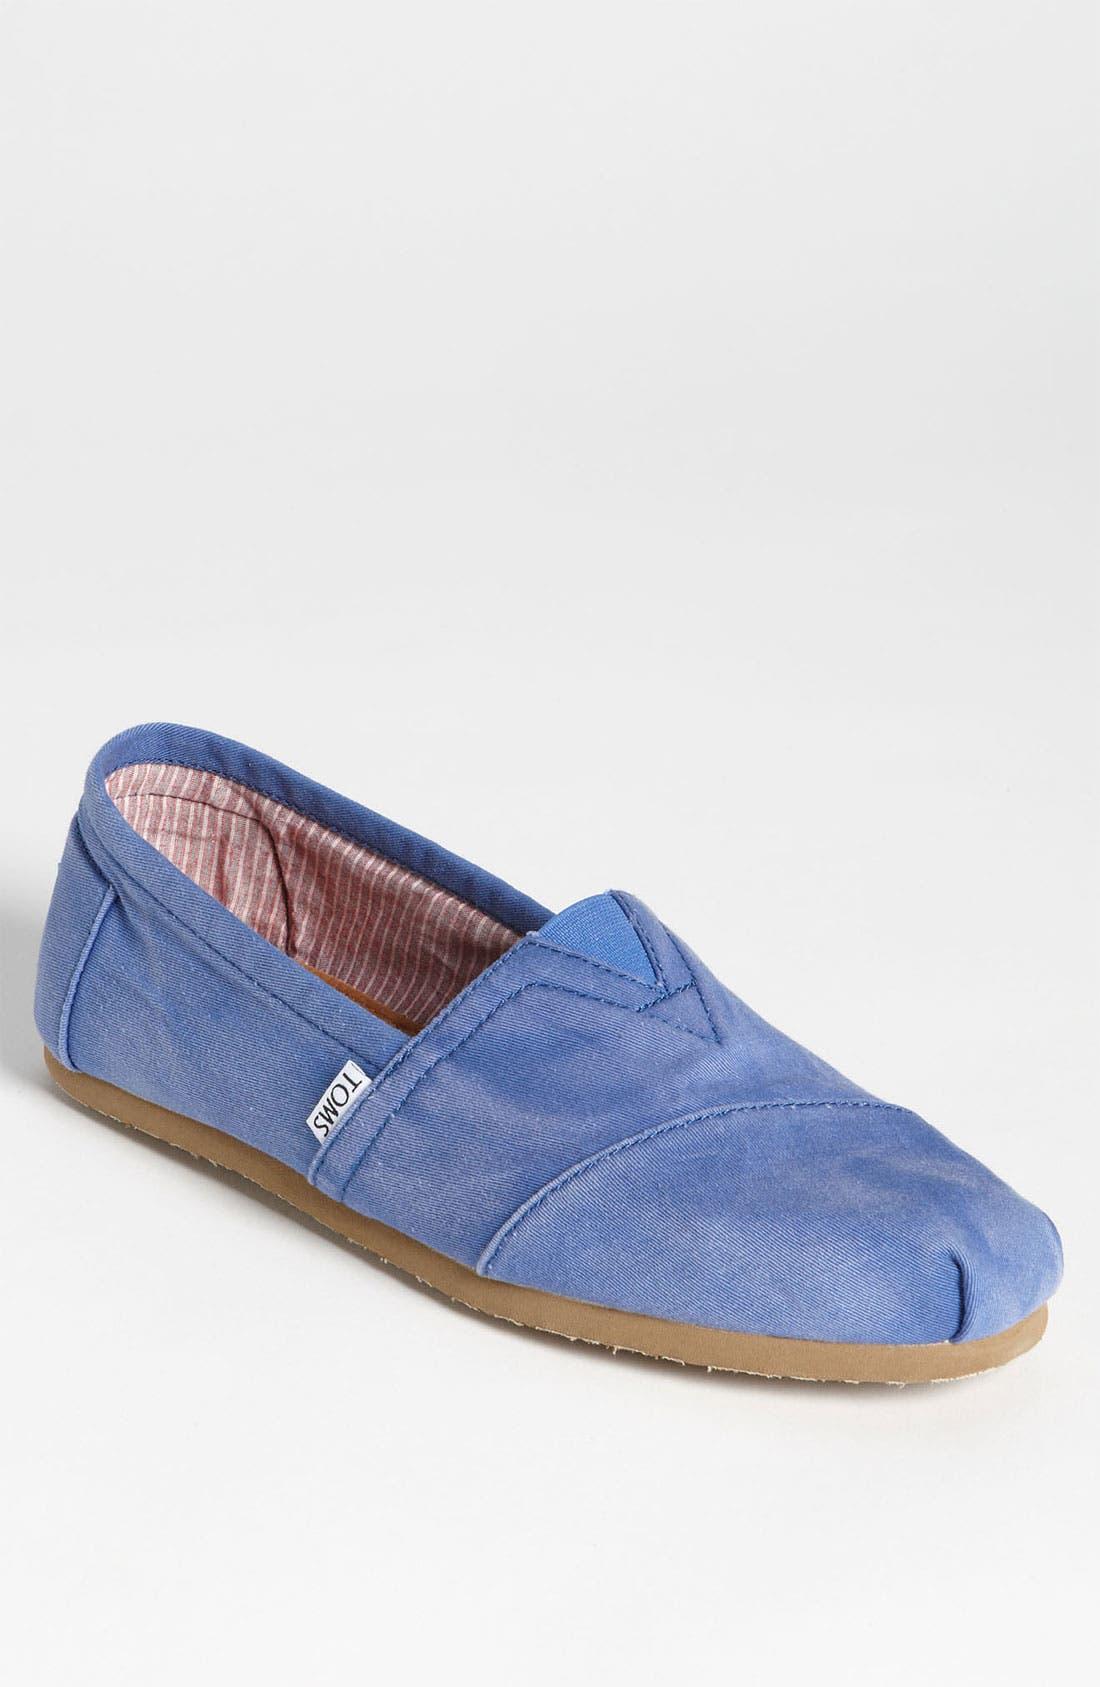 'Classic' Stonewashed Twill Slip-On,                             Main thumbnail 1, color,                             Navy